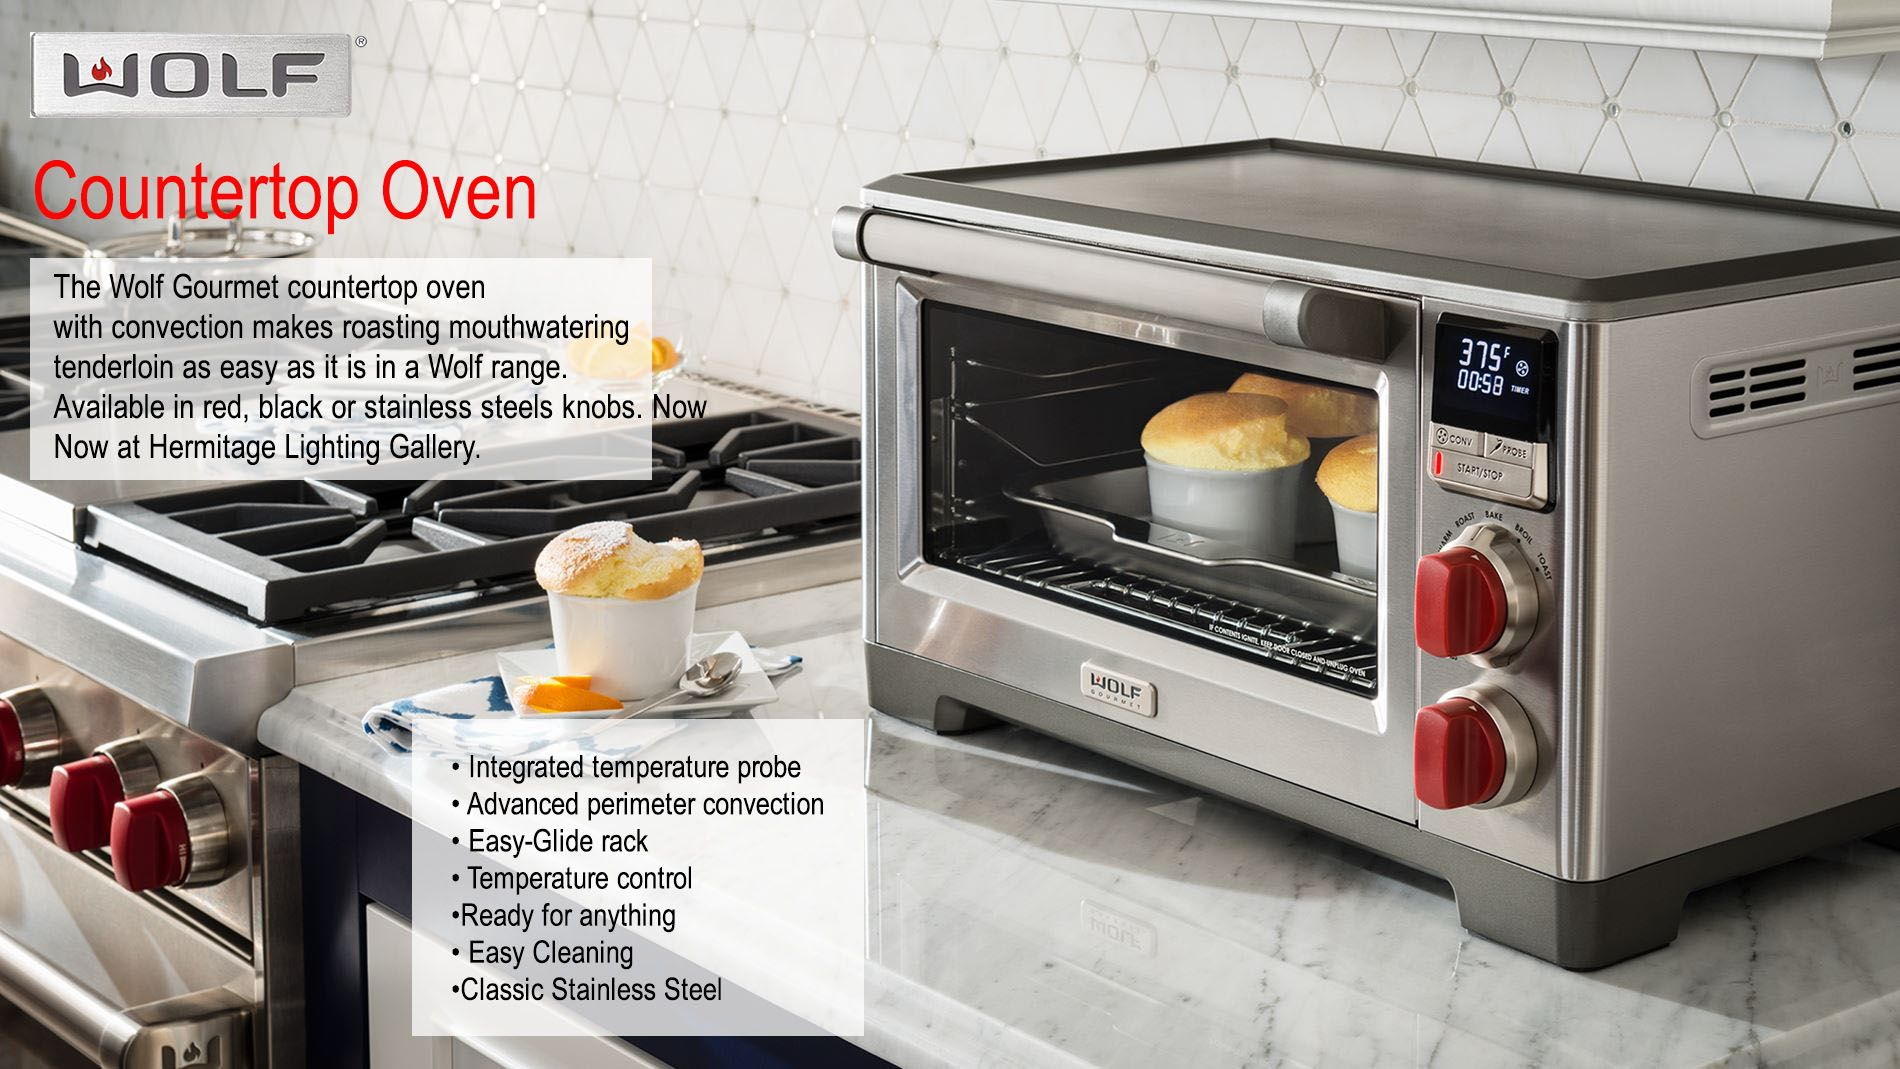 Introducing Wolf Gourmet Countertop Appliances And Kitchen Tools